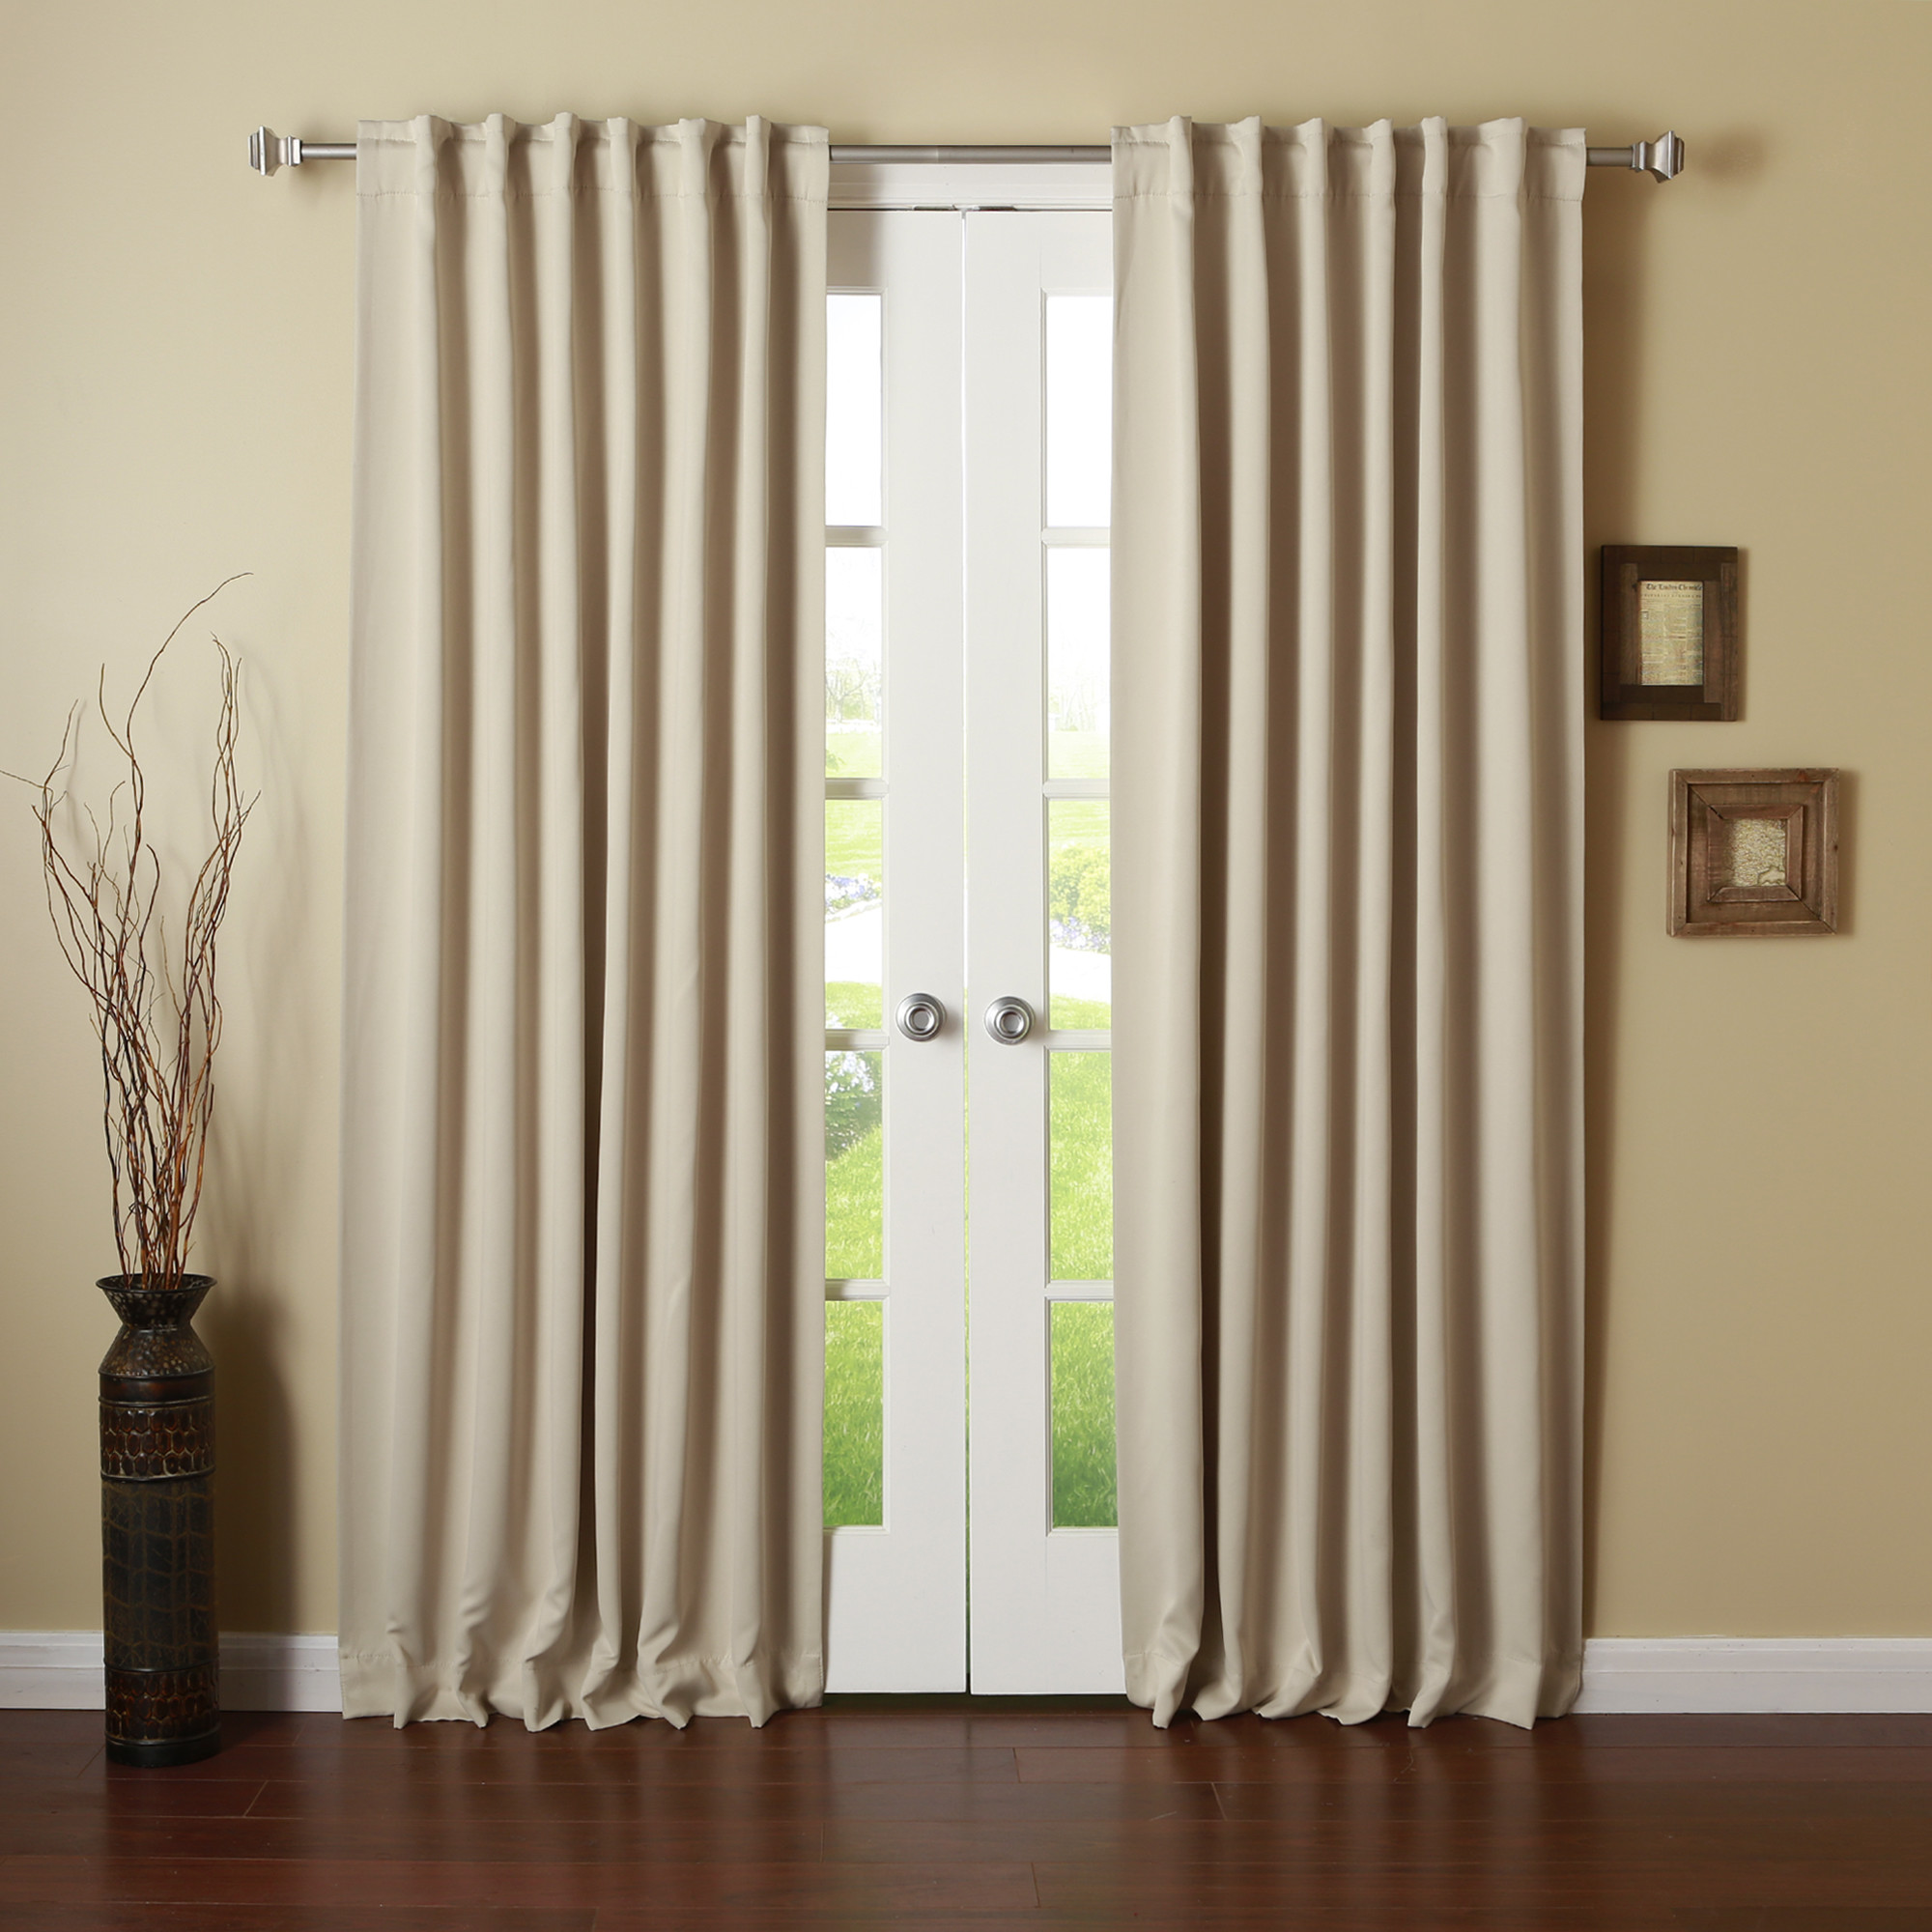 Thermal Black Out Curtains | Light Canceling Curtains | Cheap Blackout Curtains